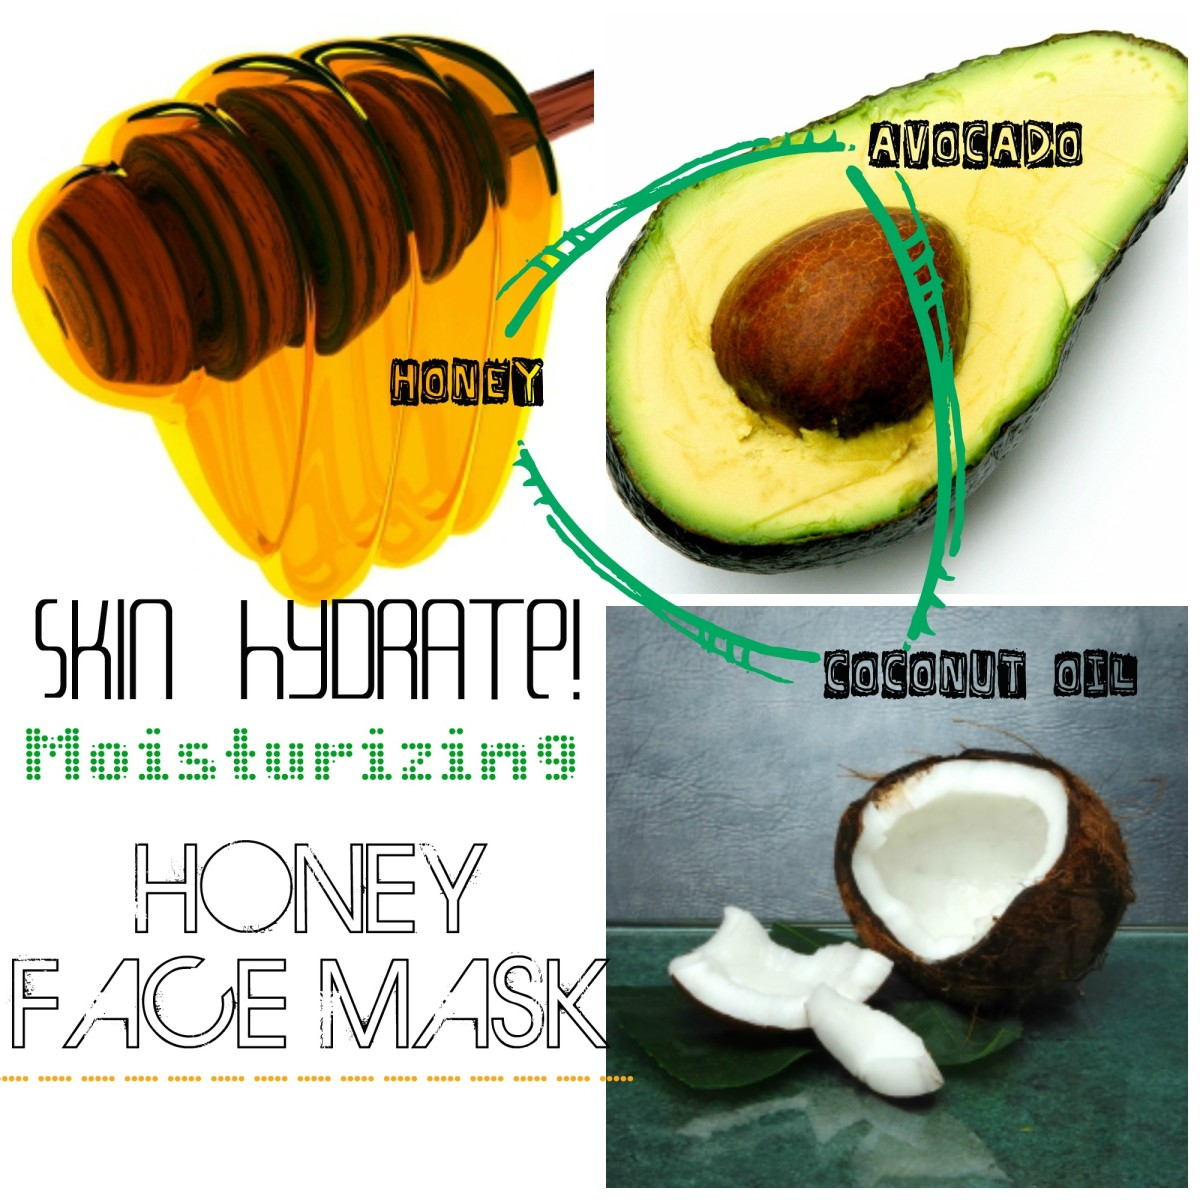 Honey Face Mask for the ultimate skin revival. With avocado and coconut oil, this is a great mask for all sorts of skin issues.